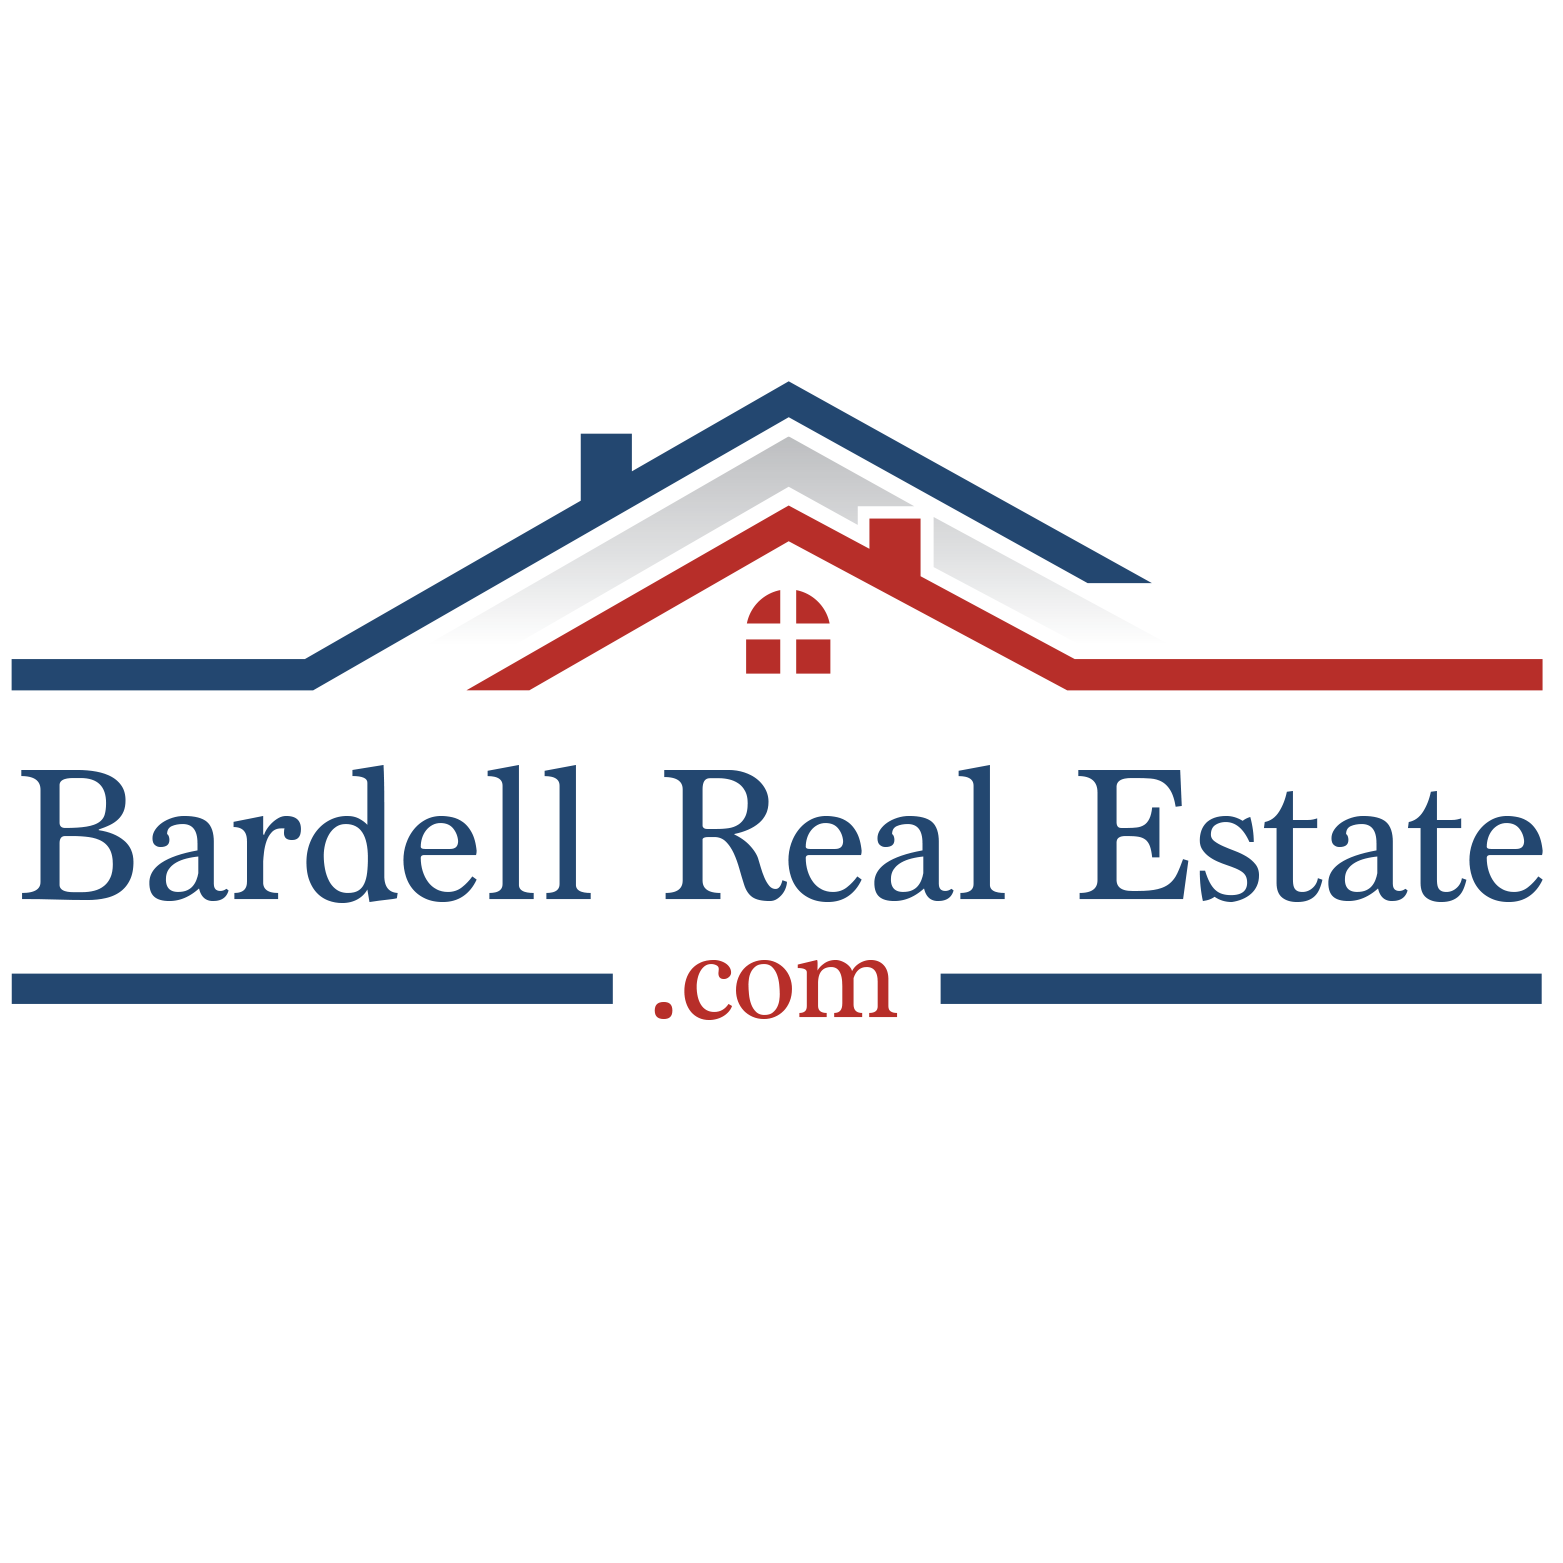 Bardell Real Estate